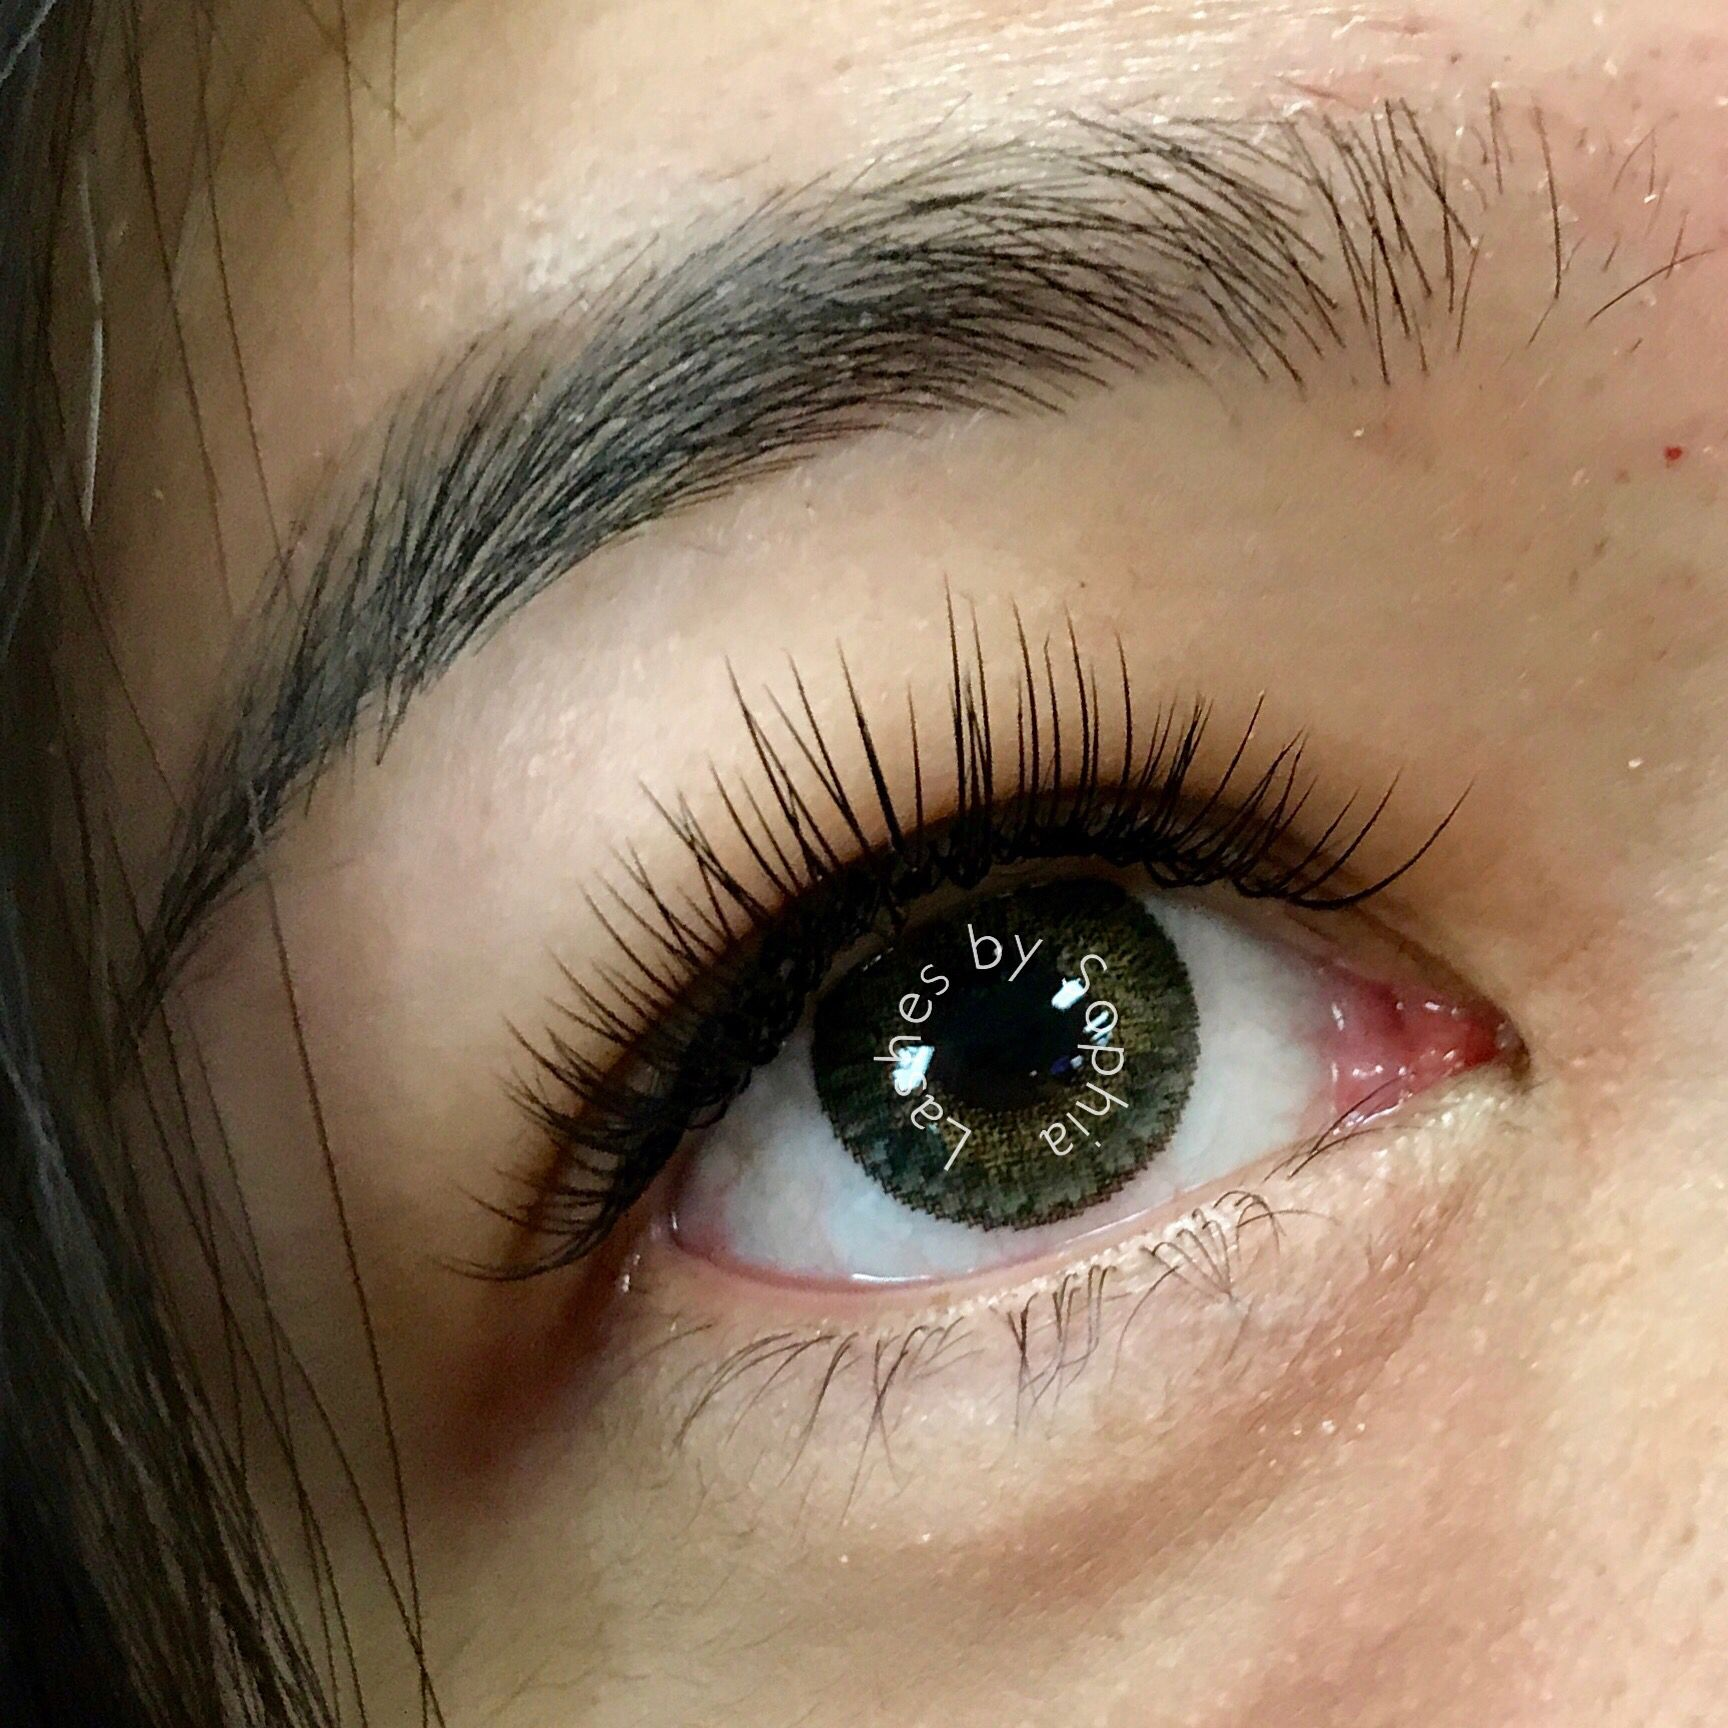 5b16d97077e When done right, lashes should be seen even on hooded eyes | Eyelash ...